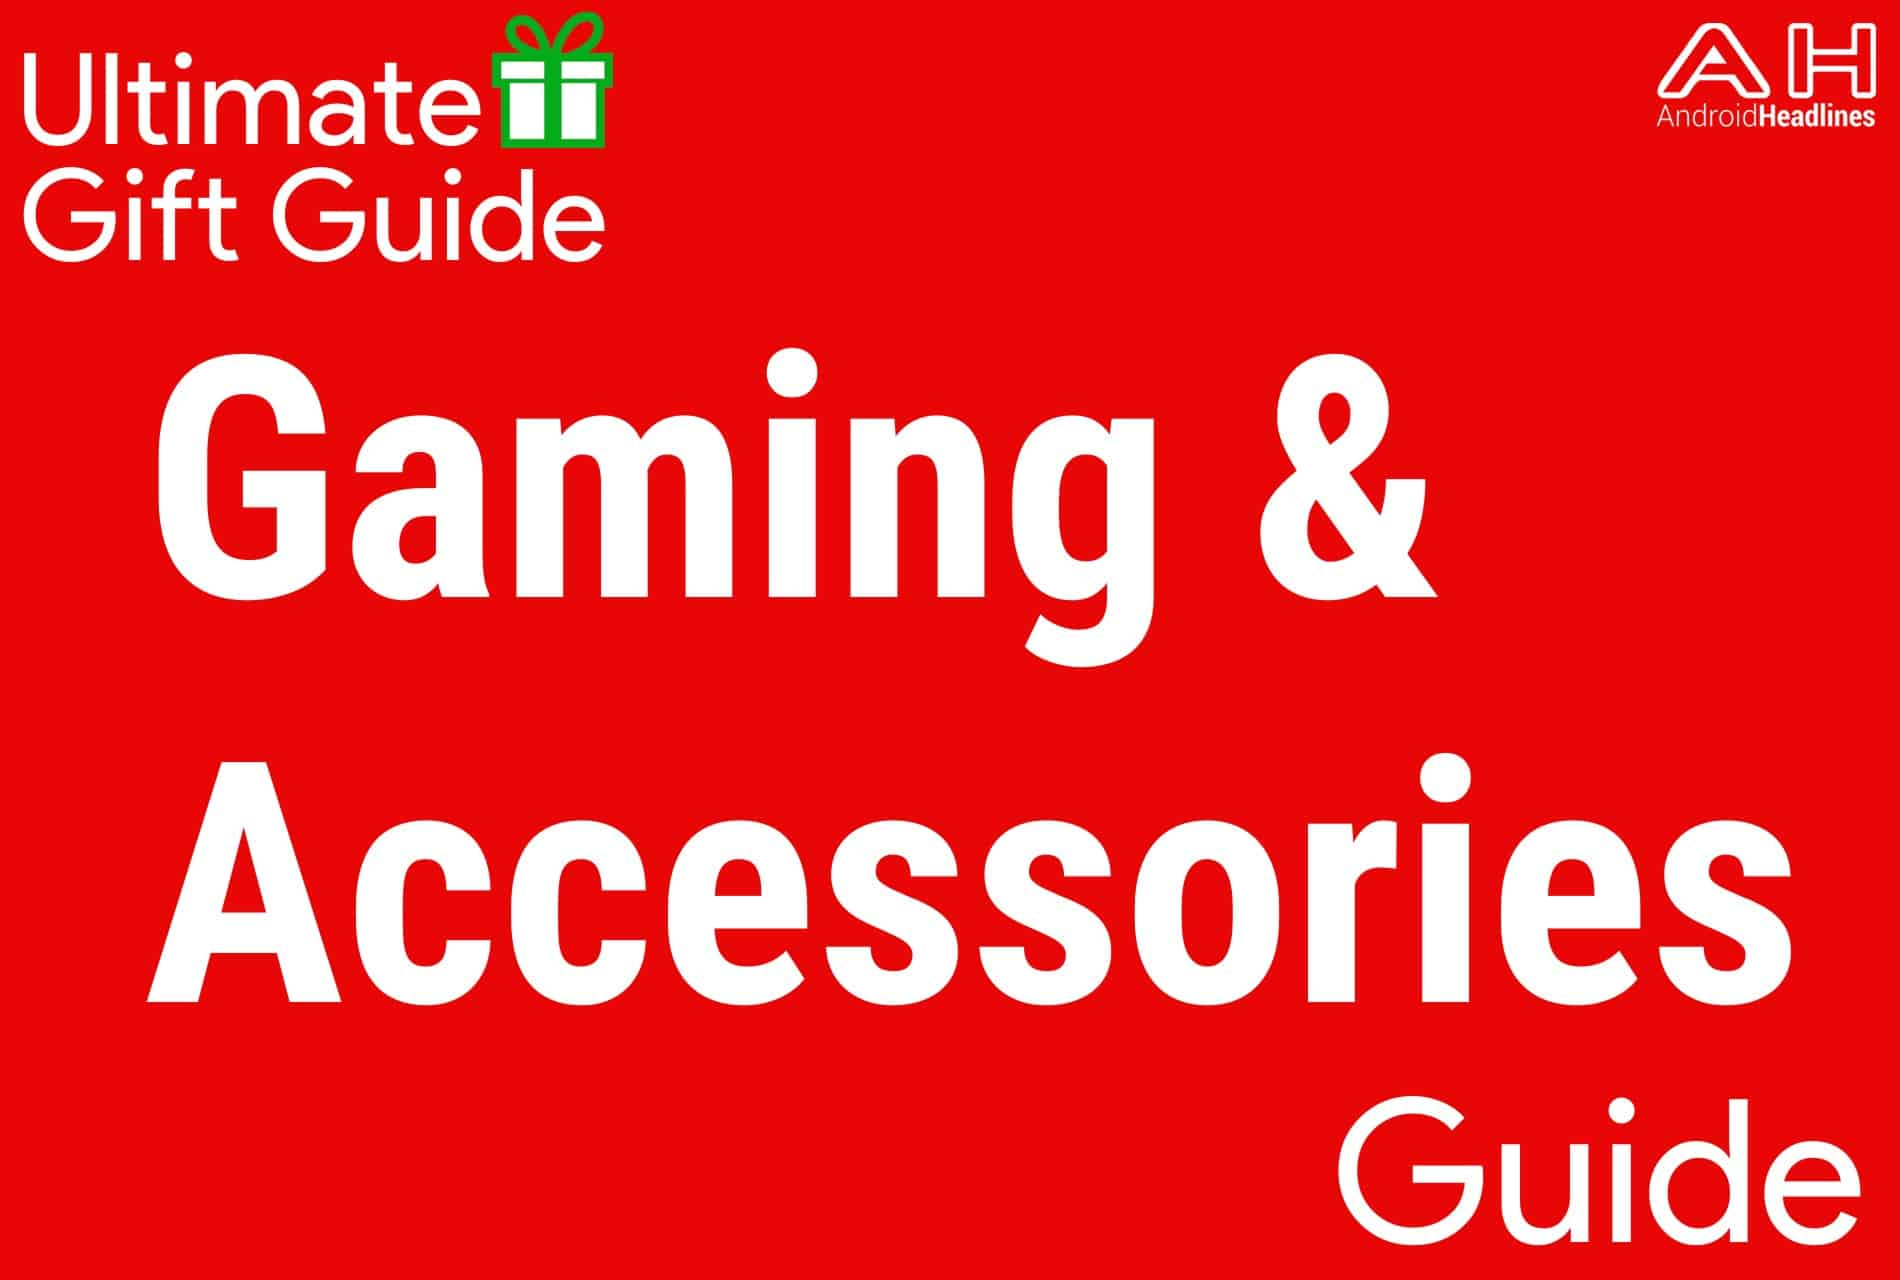 Gaming and Gaming Accessories - Holiday Gift Guide 2015-2016